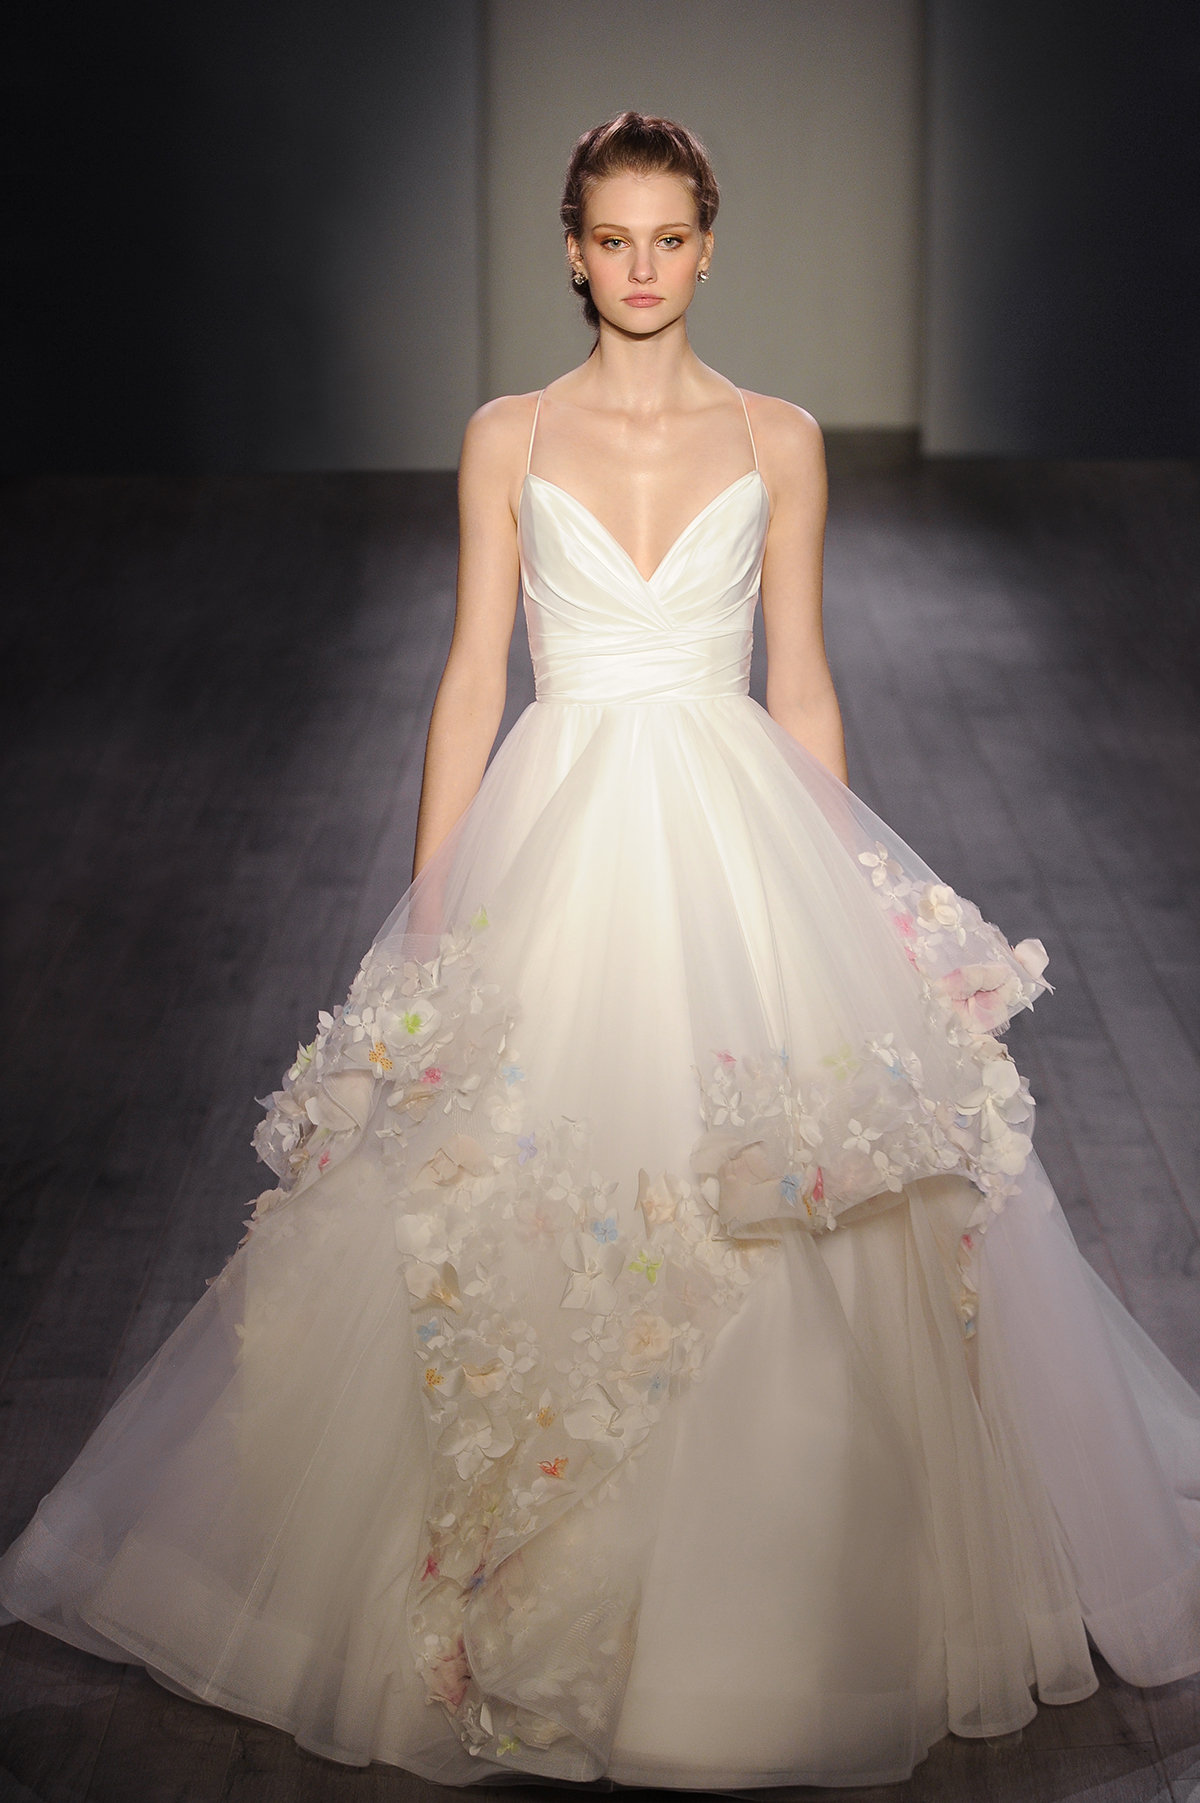 Bridal Gowns And Wedding Dresses By Jlm Couture Style 6601